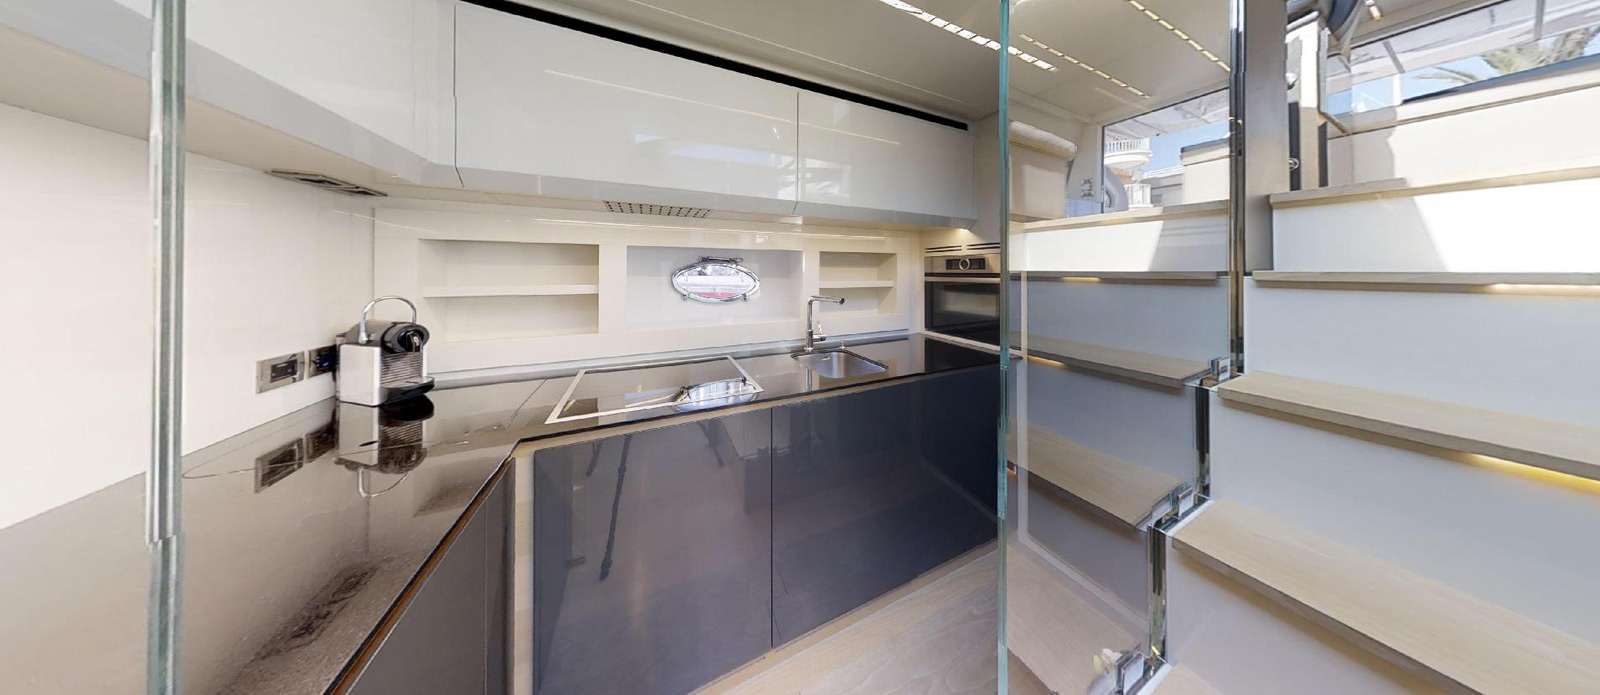 Pershing 70 - Ritmo De Vida - Galley